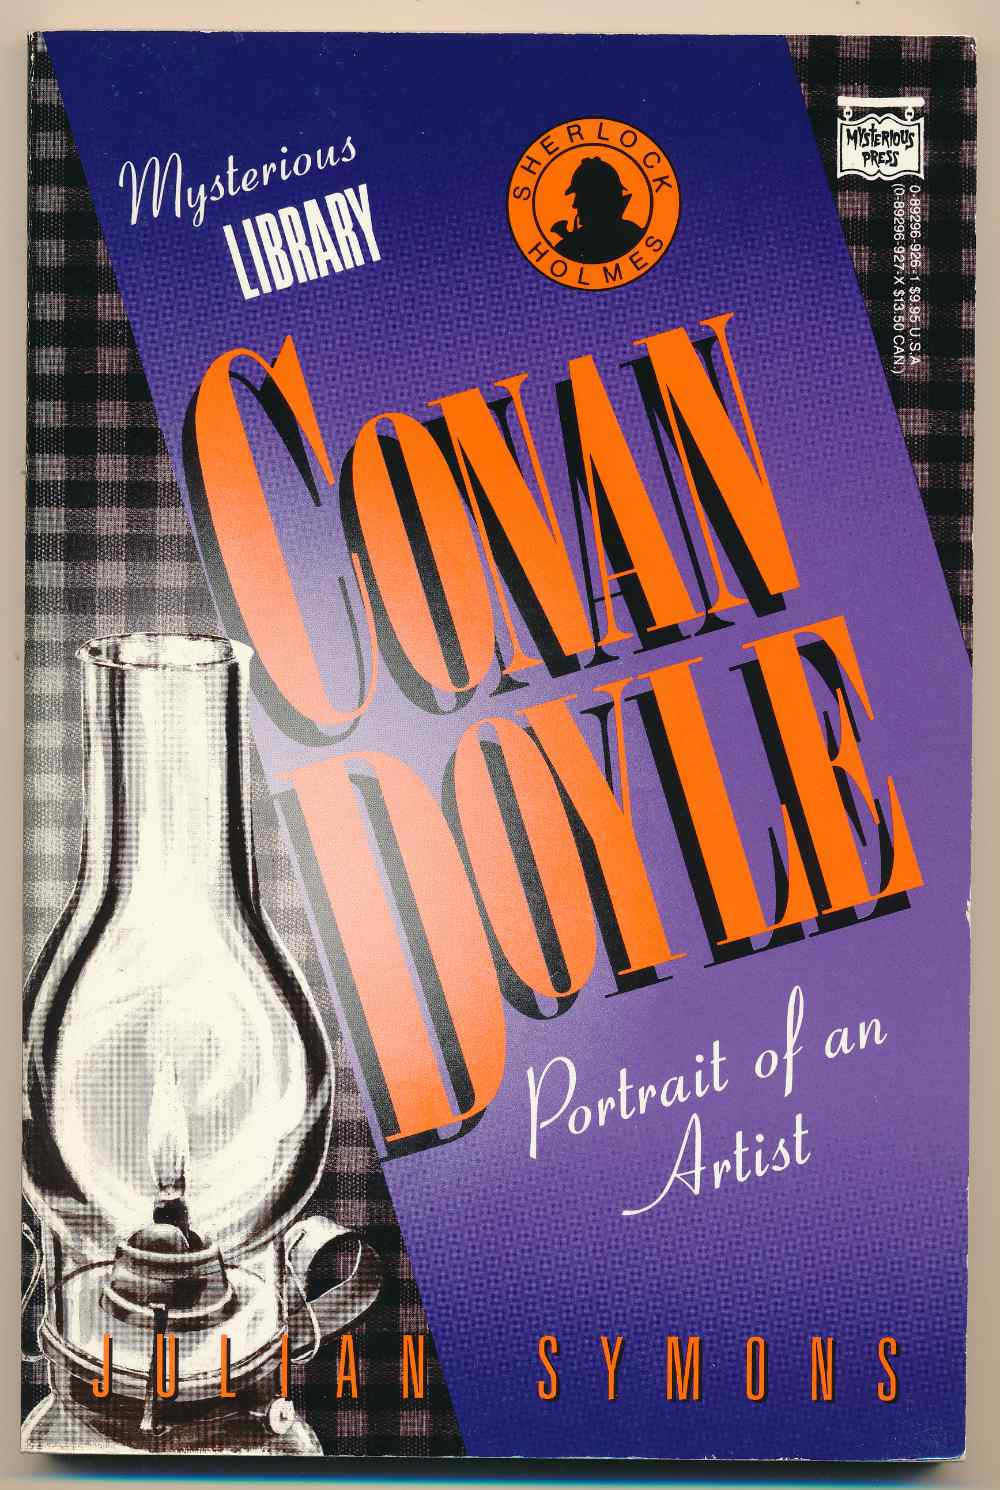 Conan Doyle : portrait of an artist